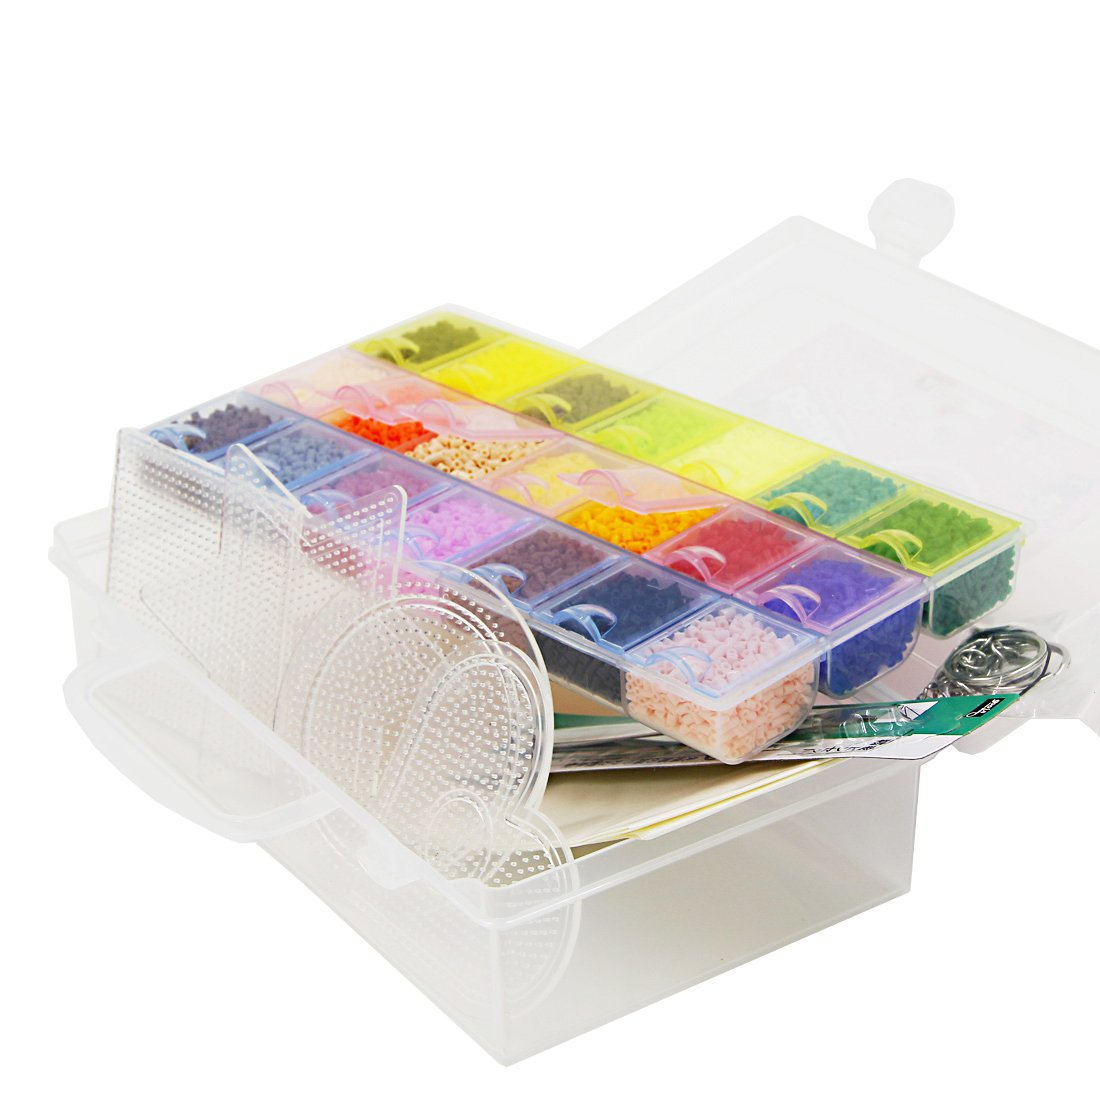 Artkal Beads 14,300 Mini Beads 21 Colors and 4 Small Mini Pegboards in a Box Set CC21 C-2.6mm (IT'S MINI BEADS NOT STANDARD MIDI SIZE) by ARTKAL